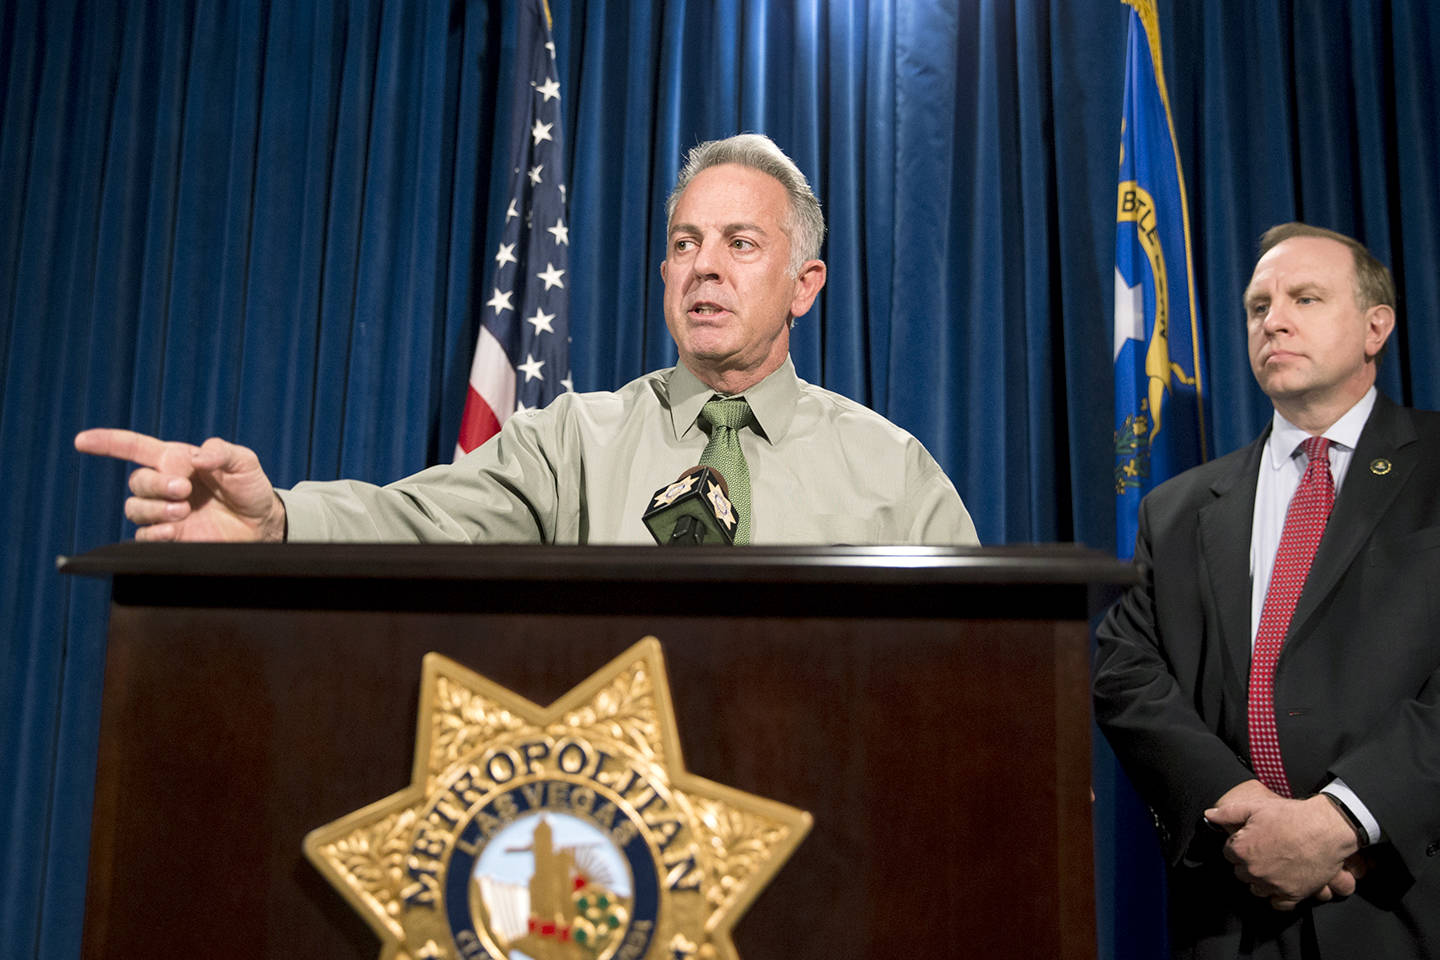 Las Vegas shooter acted alone, exact motive still undetermined: Sheriff